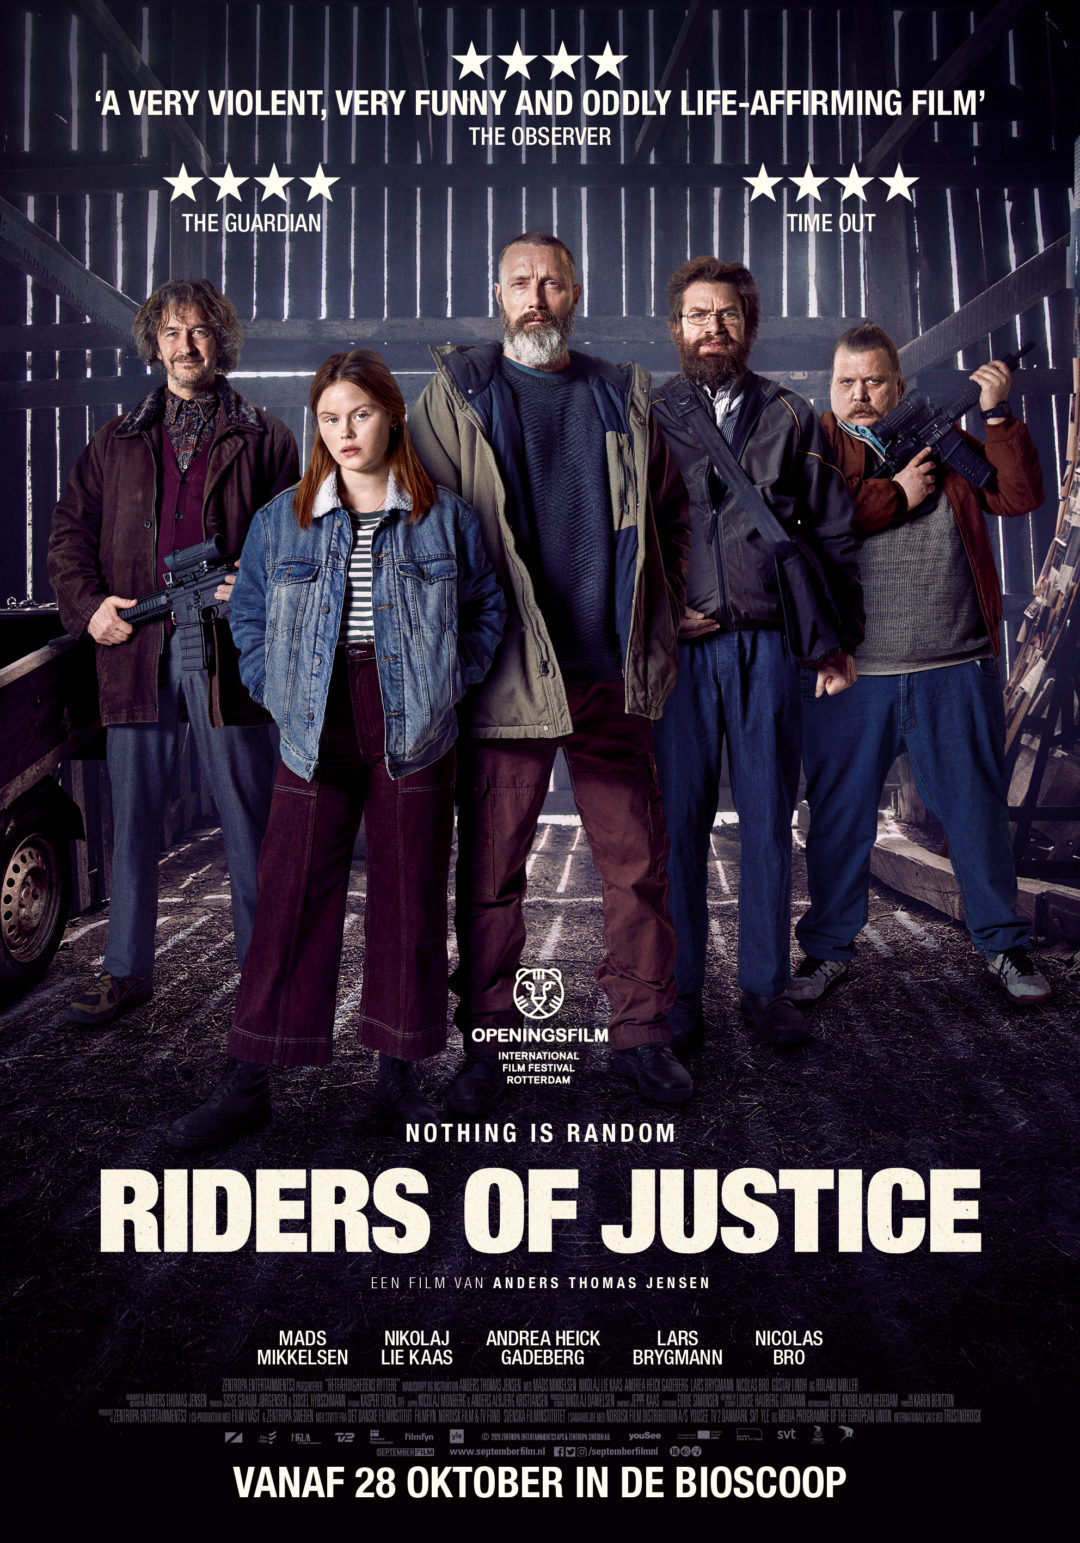 Riders-of-Justice_ps_1_jpg_sd-high.jpg